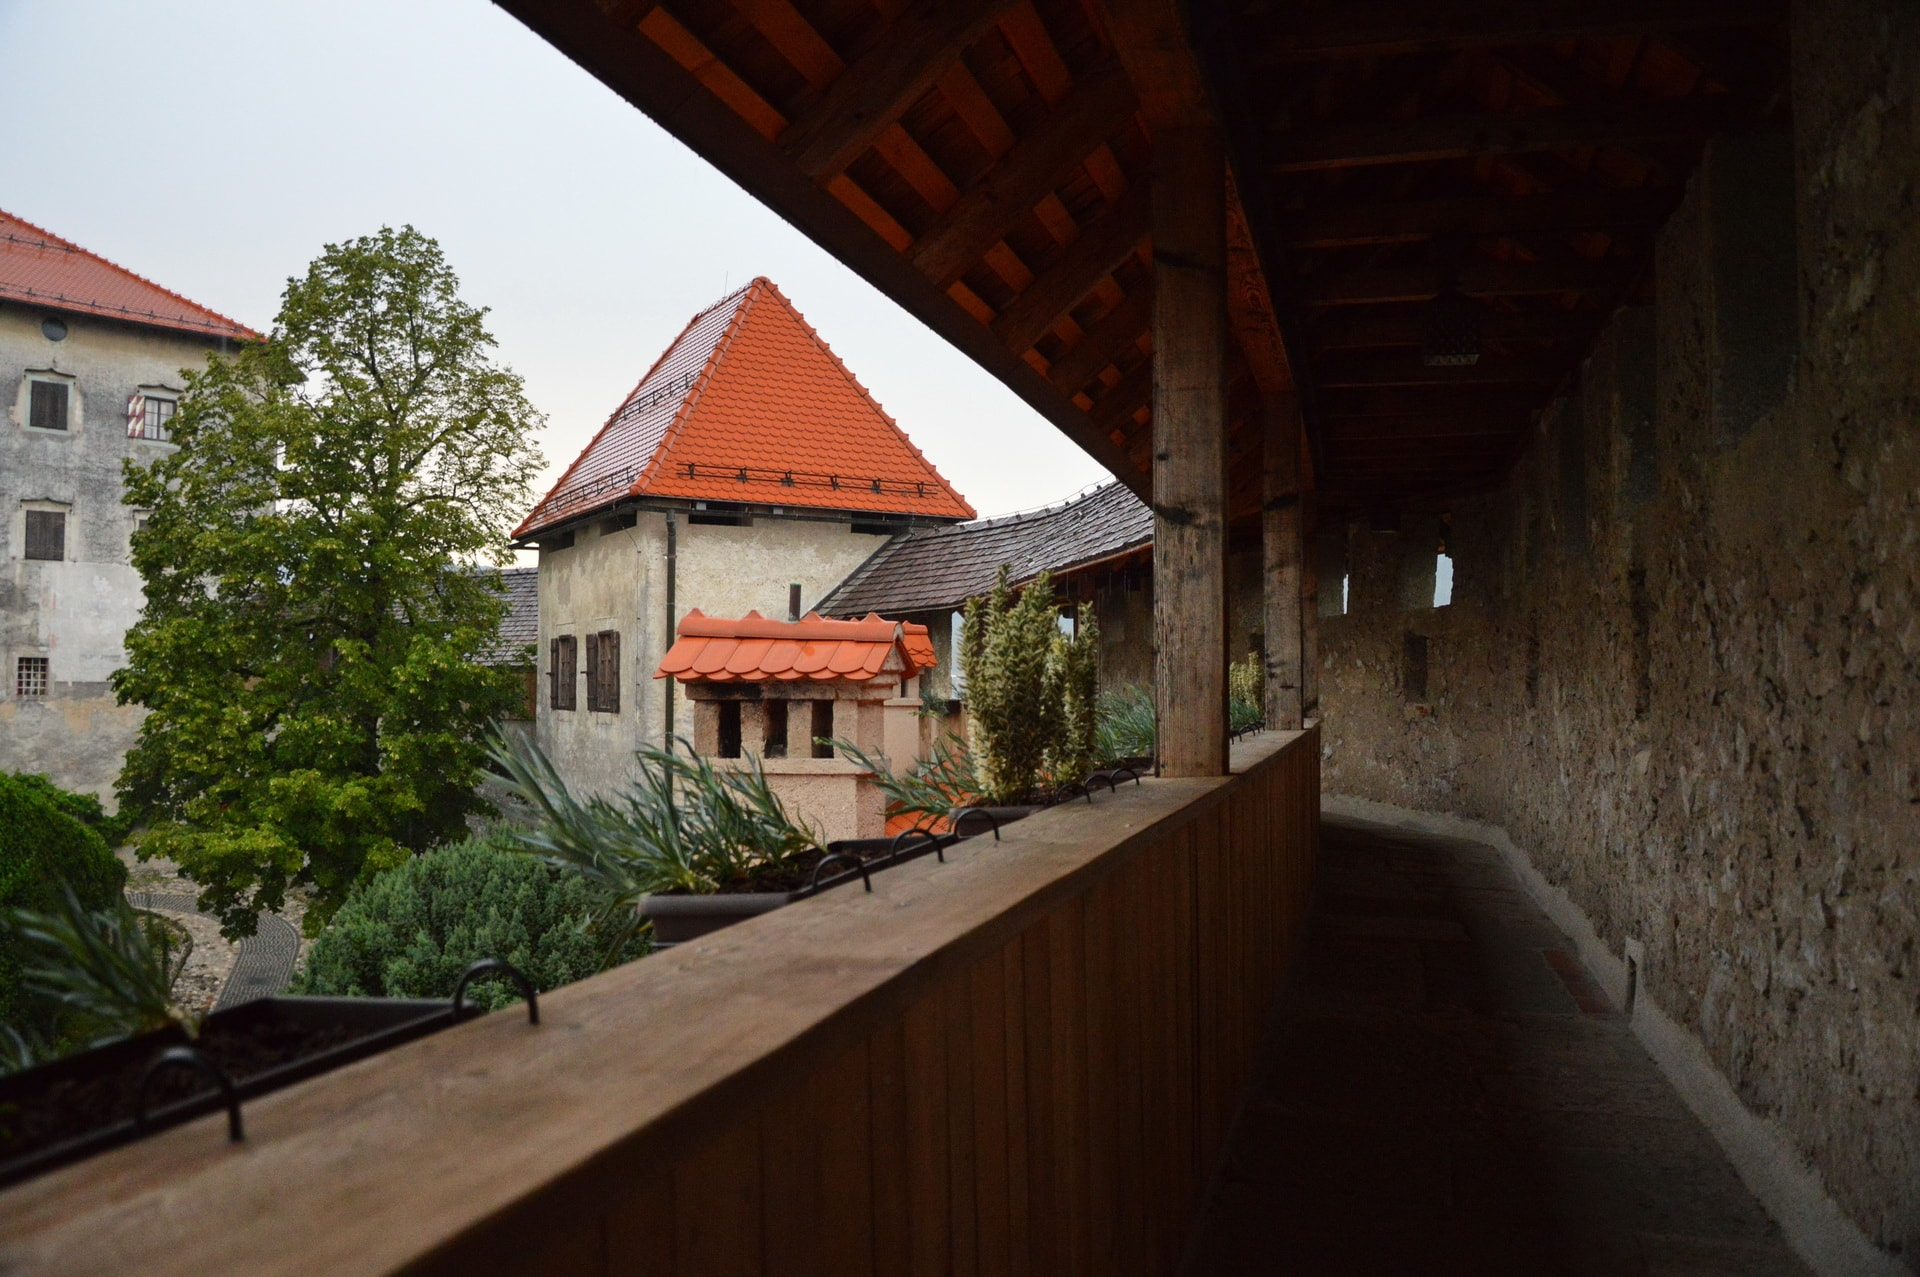 On the walls of the Bled Castle